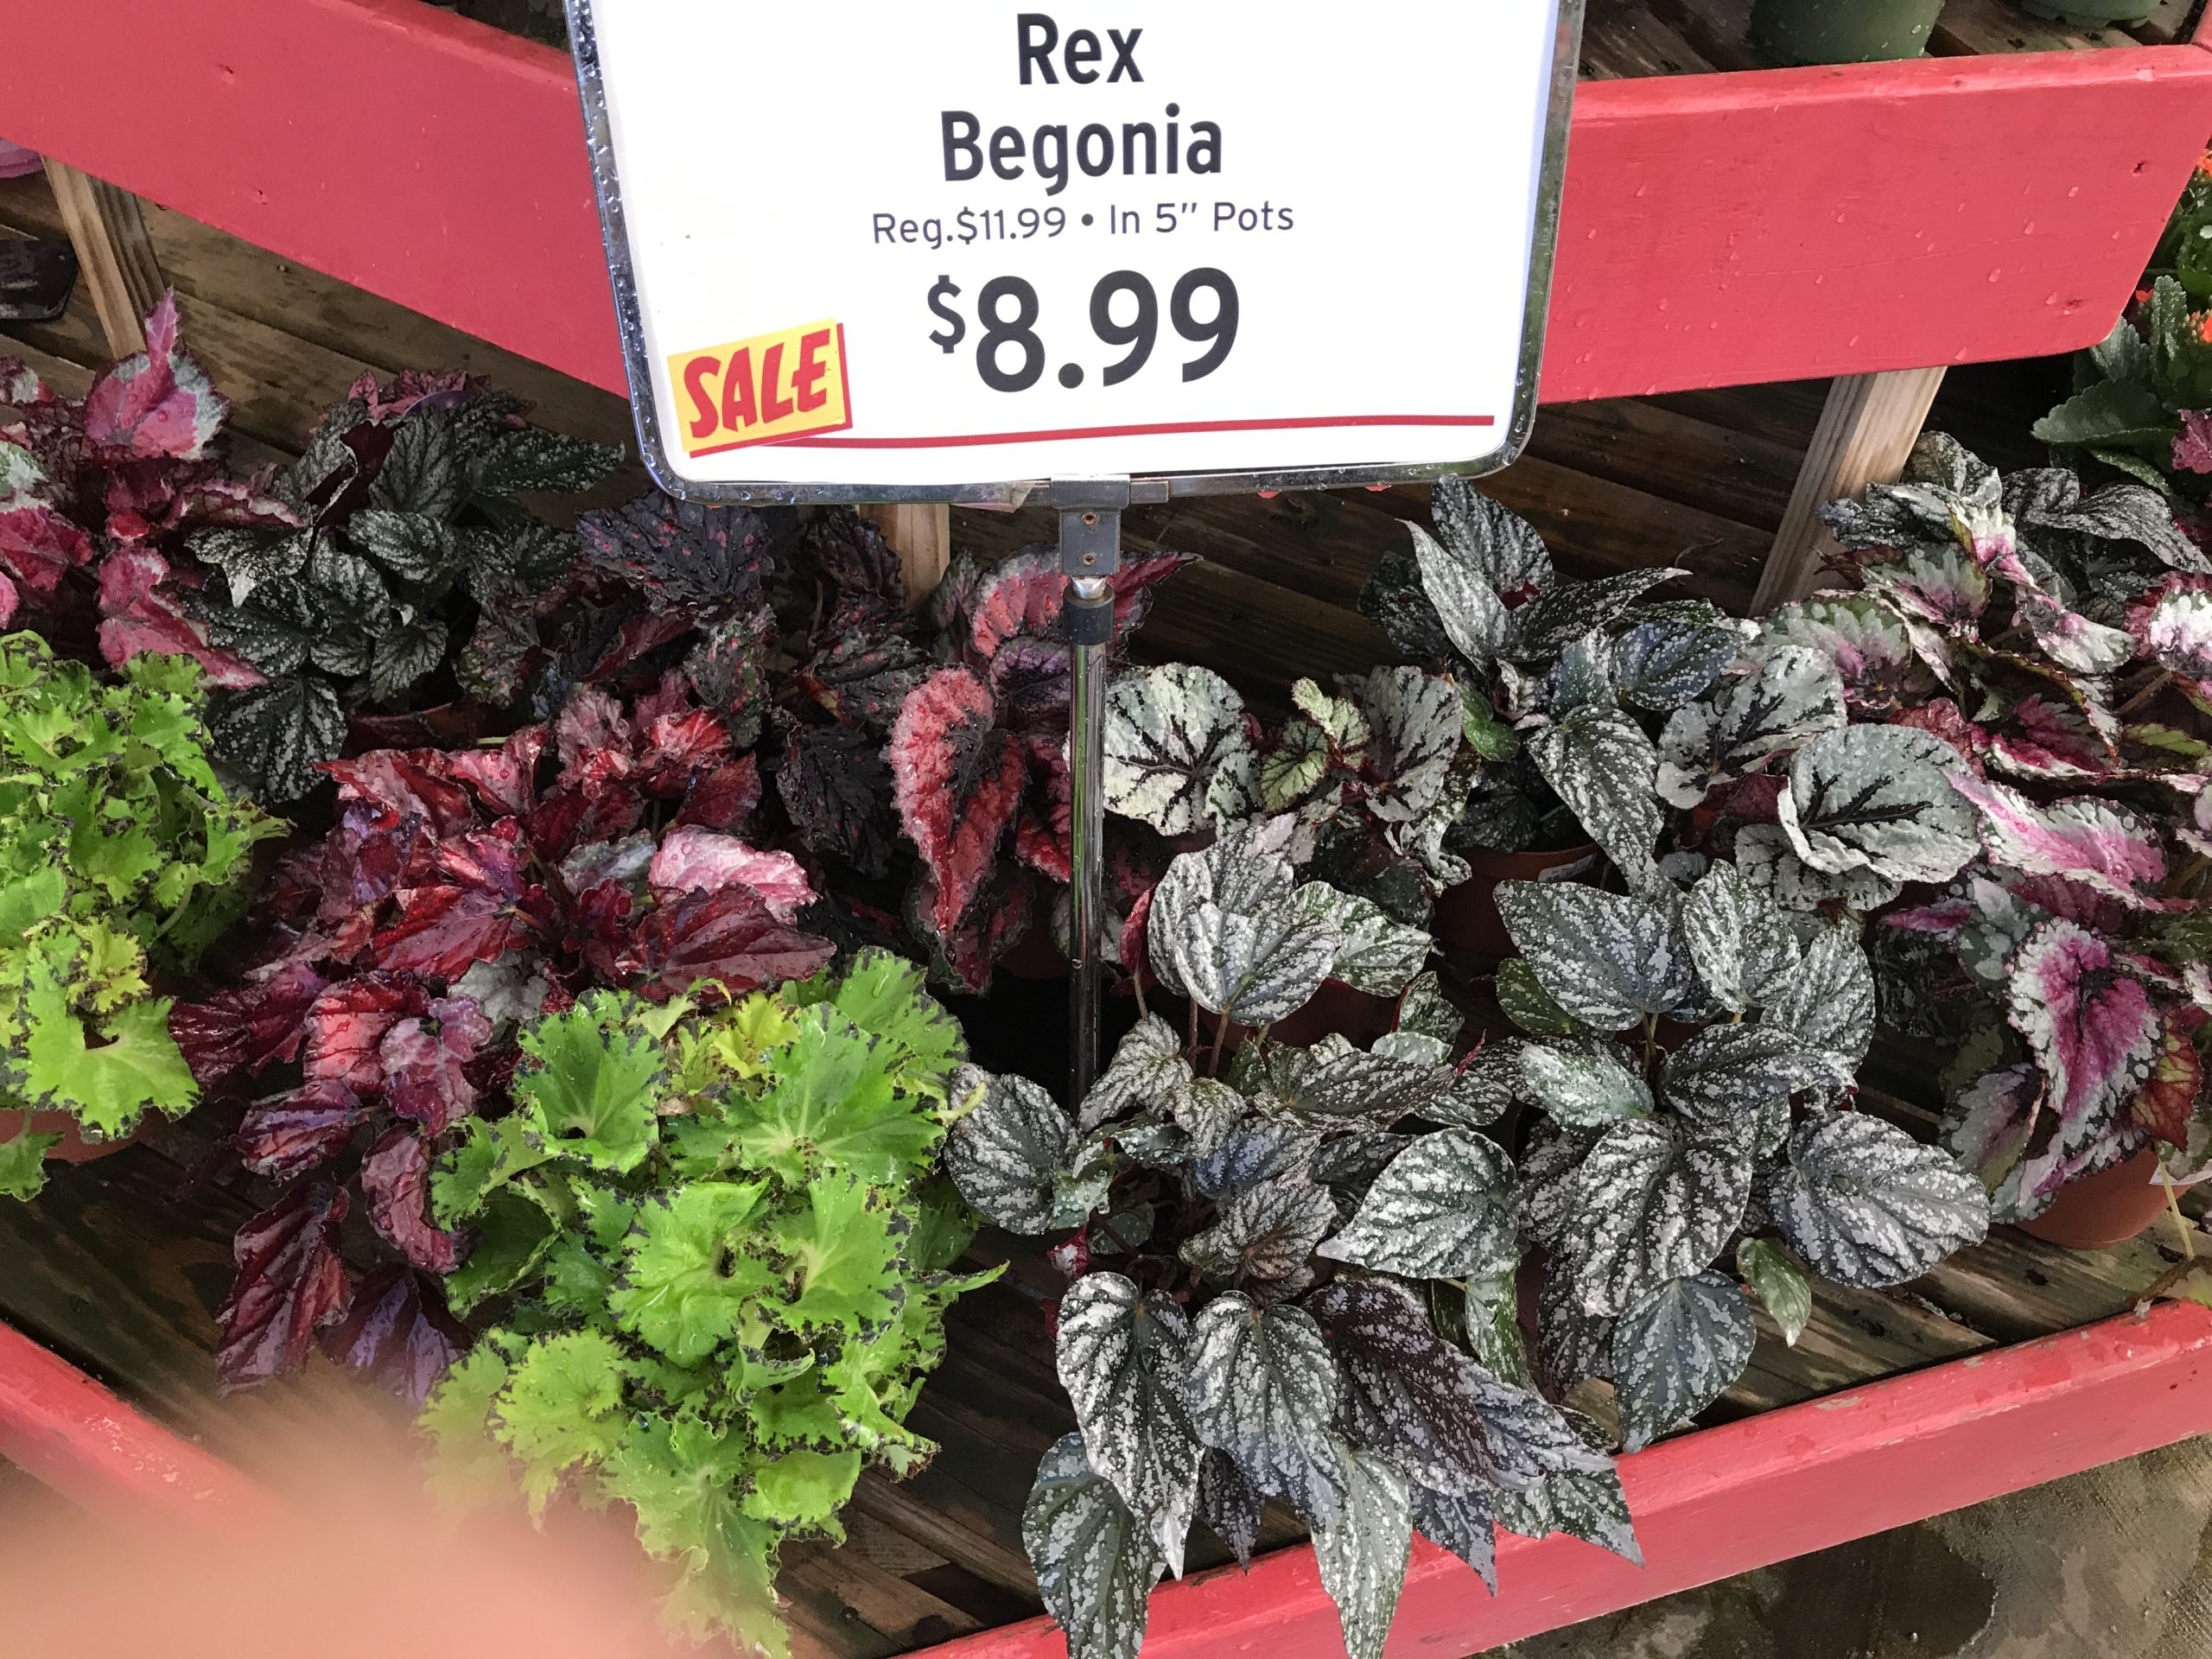 Rex Begonias on sale in 5-inch pots. Expect them to last about three years with annual repotting.